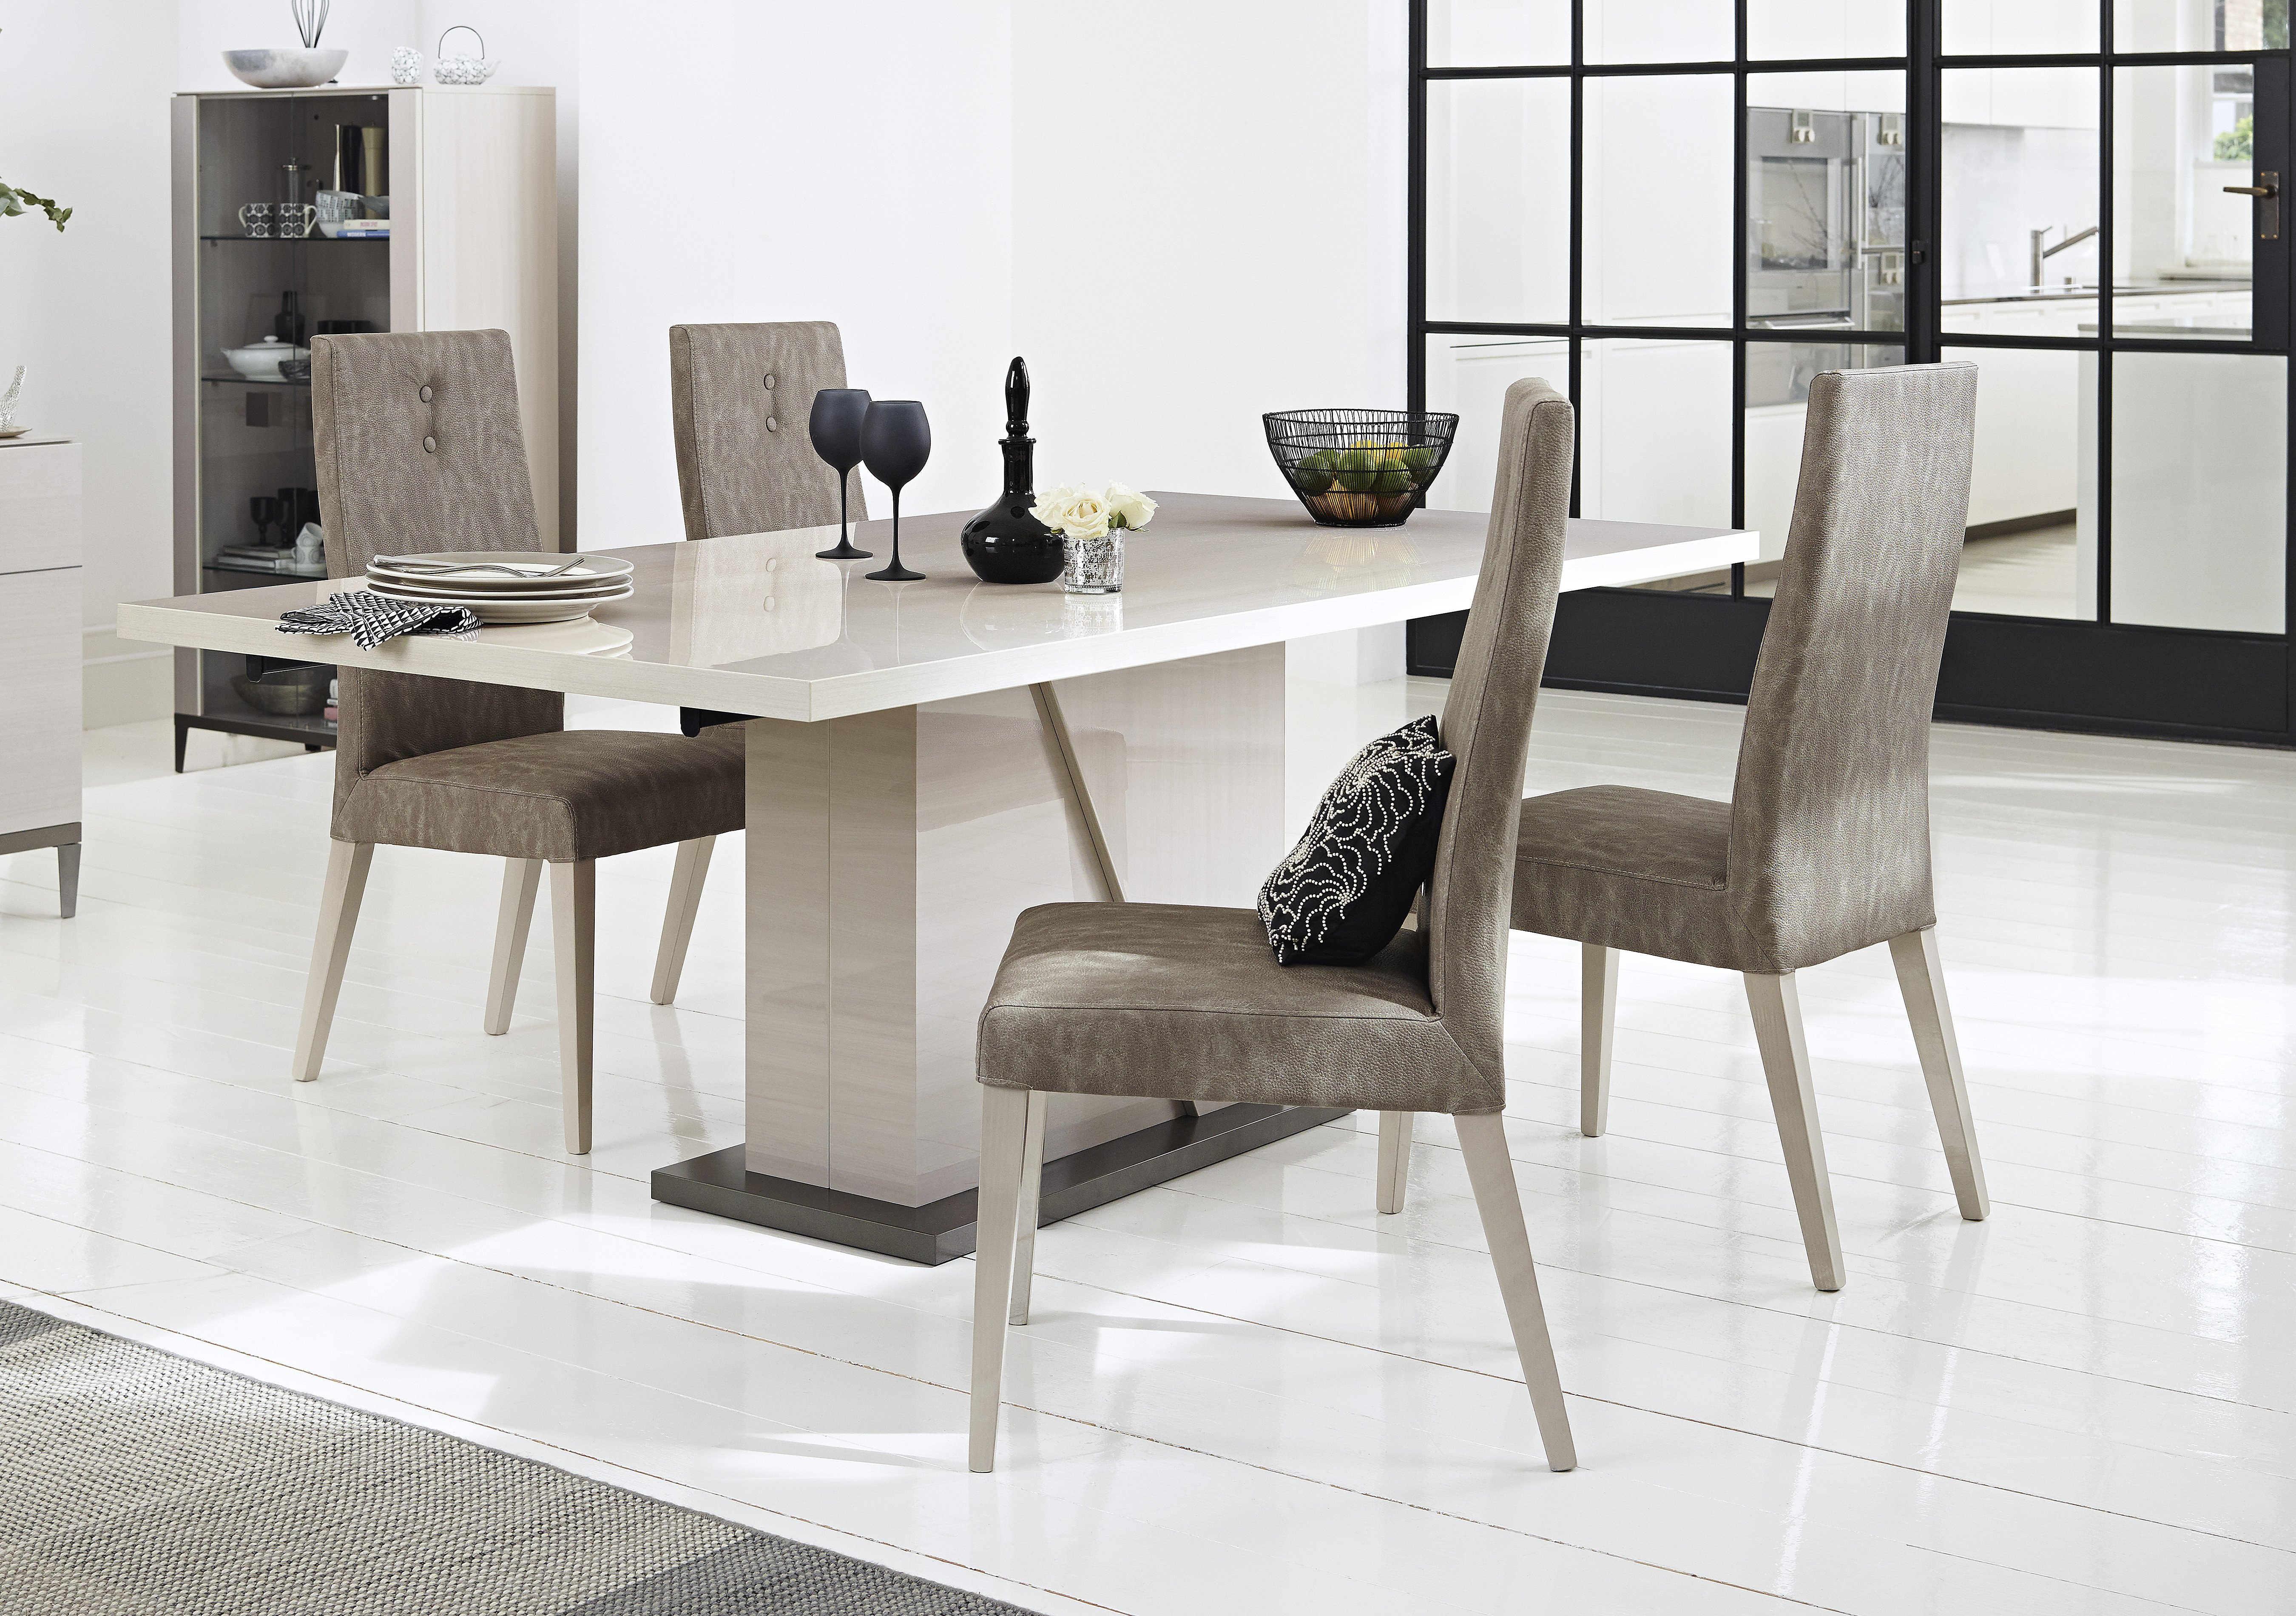 Furniture Village Dining Chairs alpine dining table and 4 dining chairs - alf - furniture village